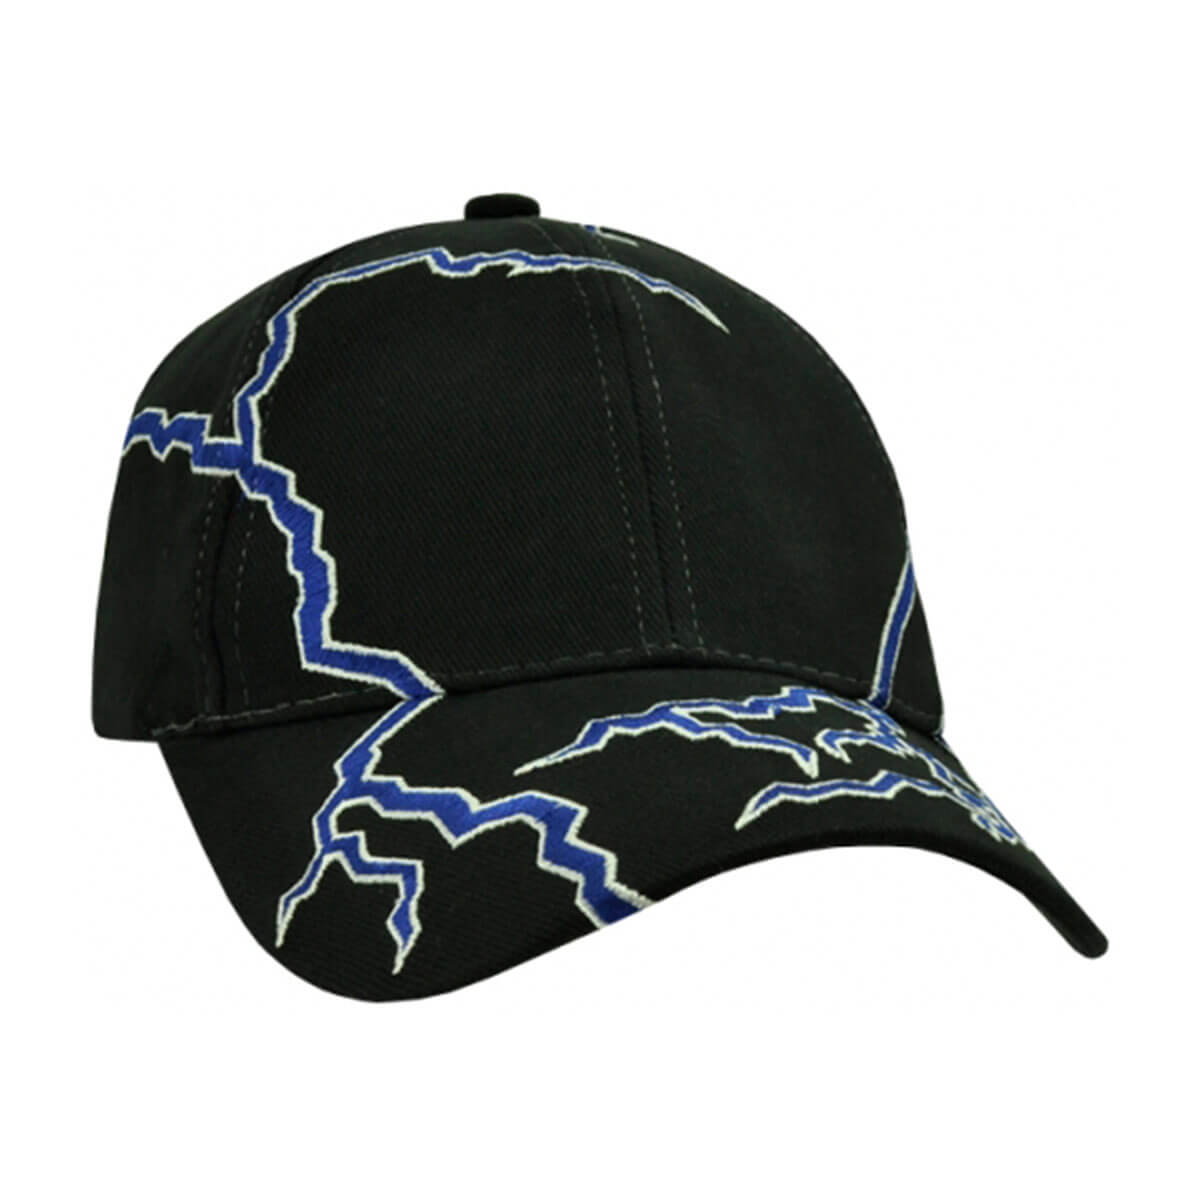 Lightning Cap-Black / Royal / White